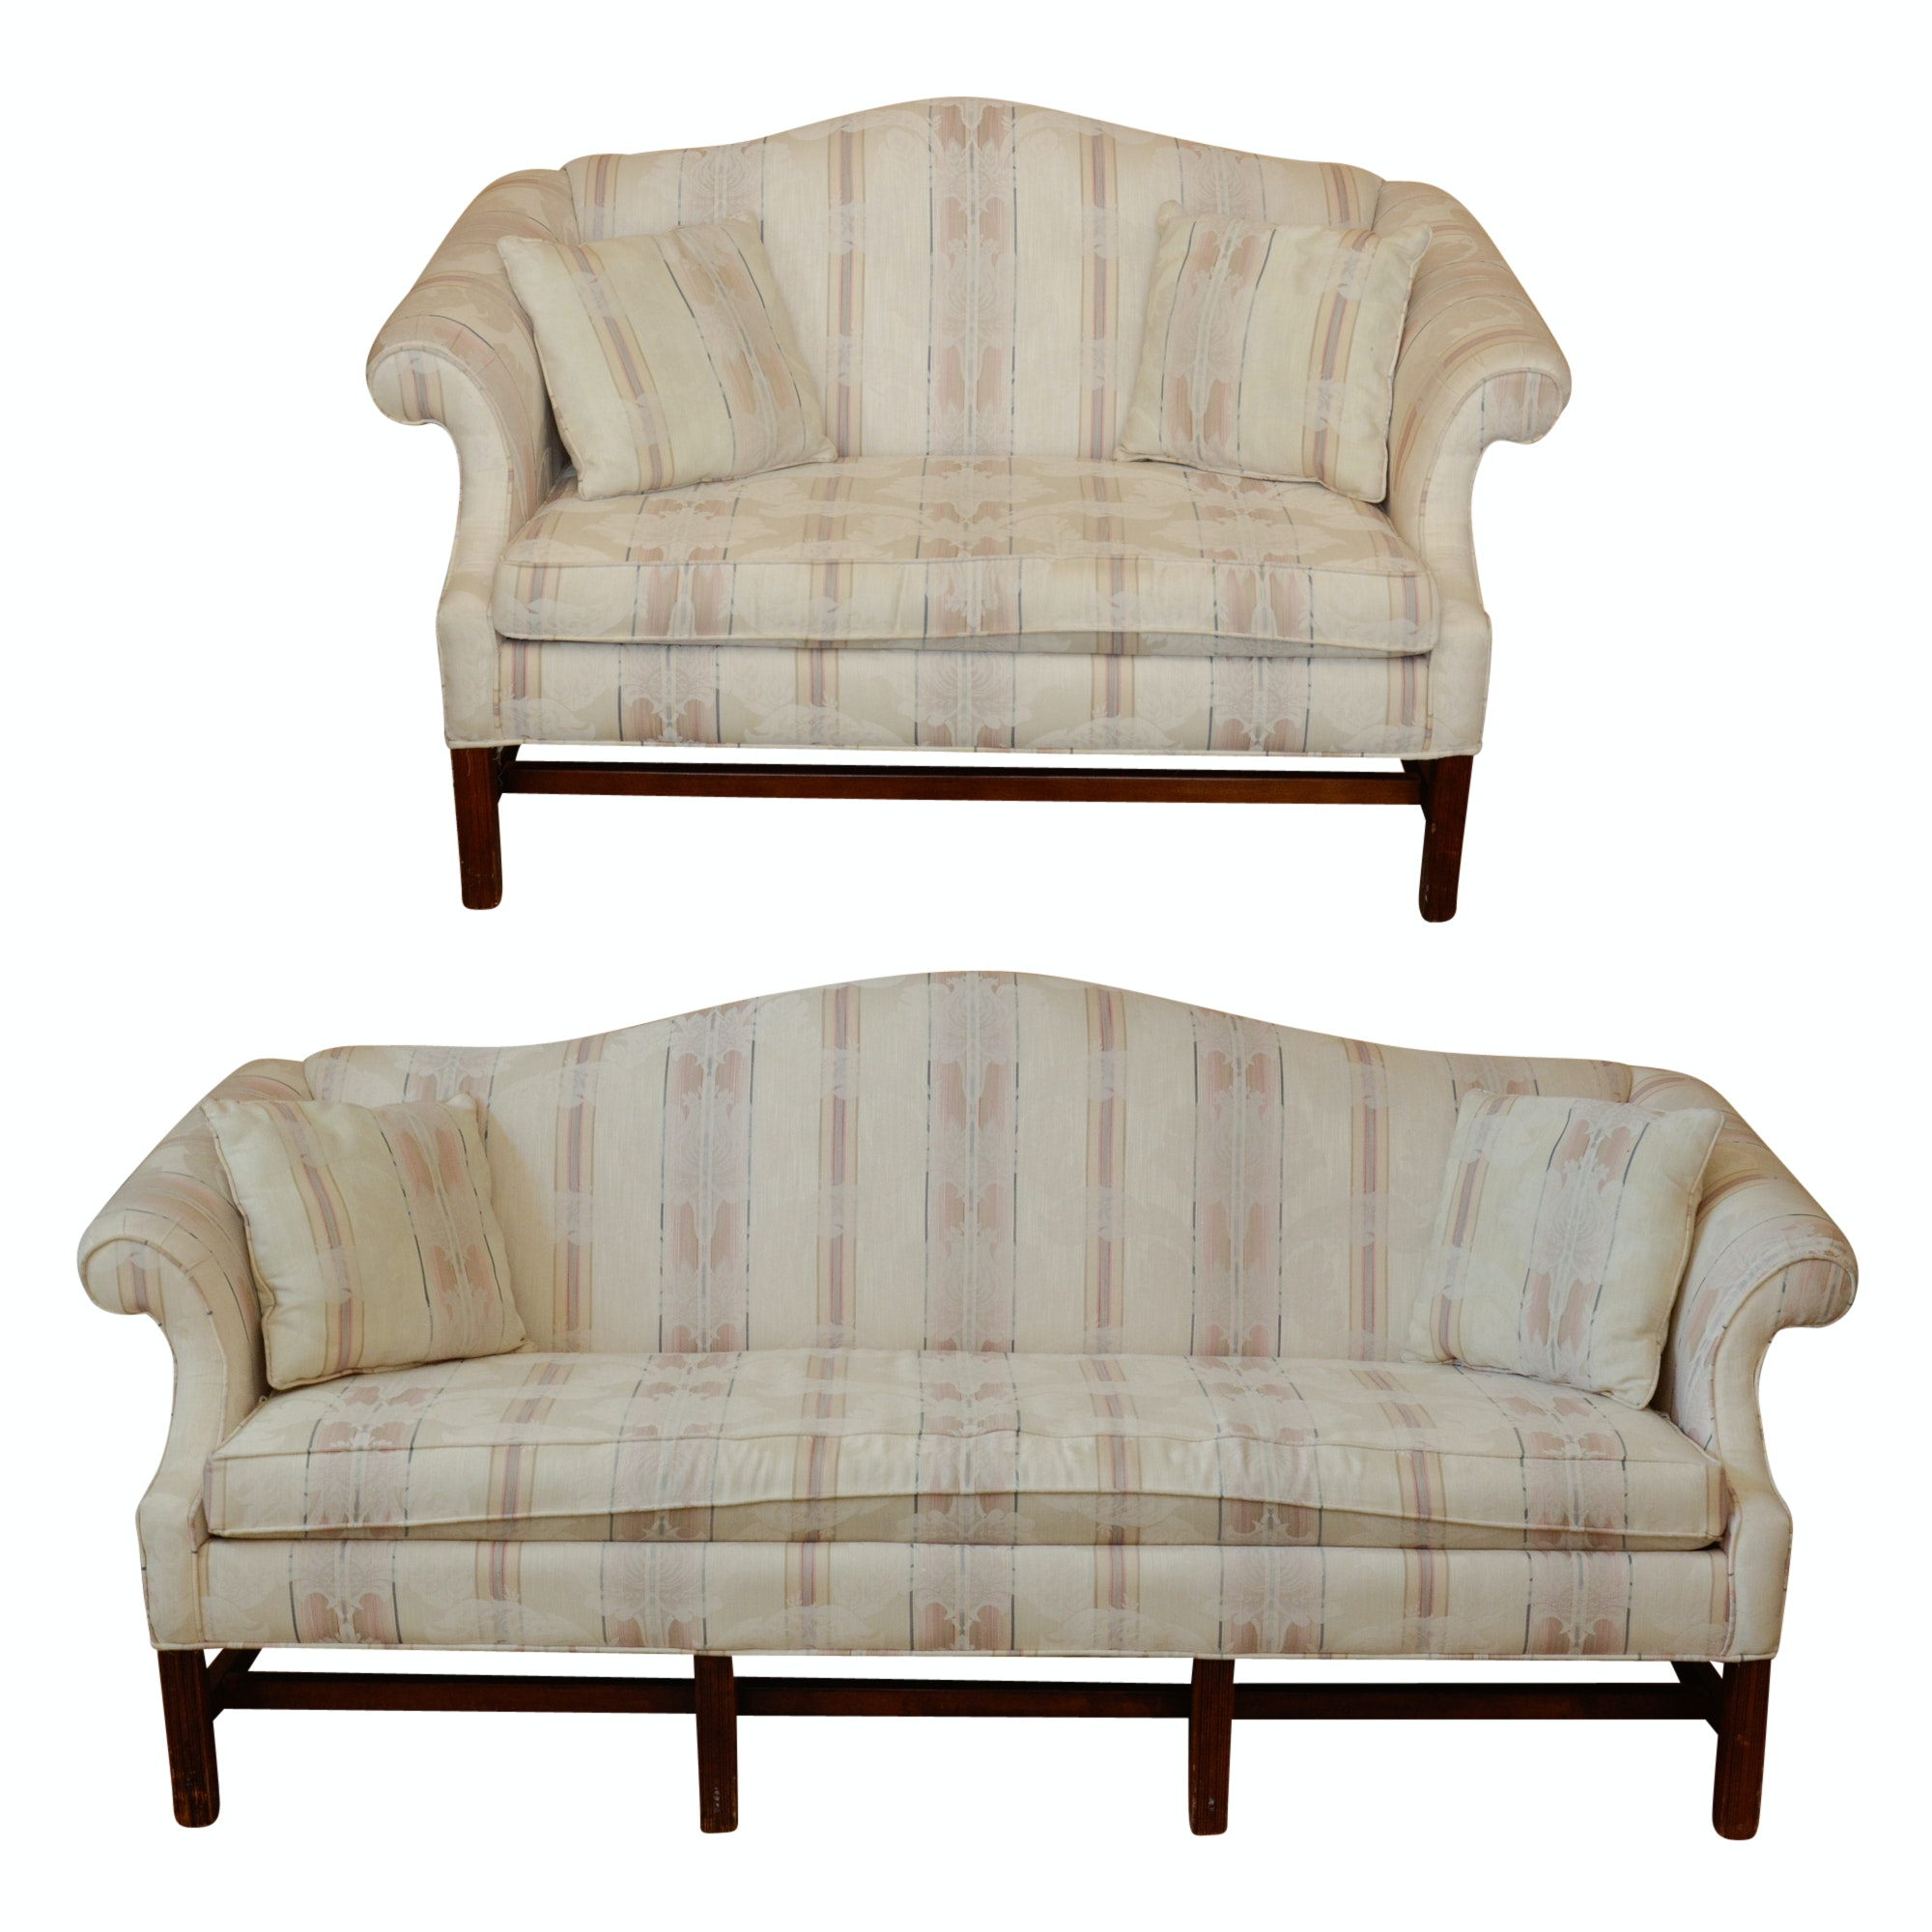 Chippendale Style Upholstered Sofa and Love Seat by Bassett